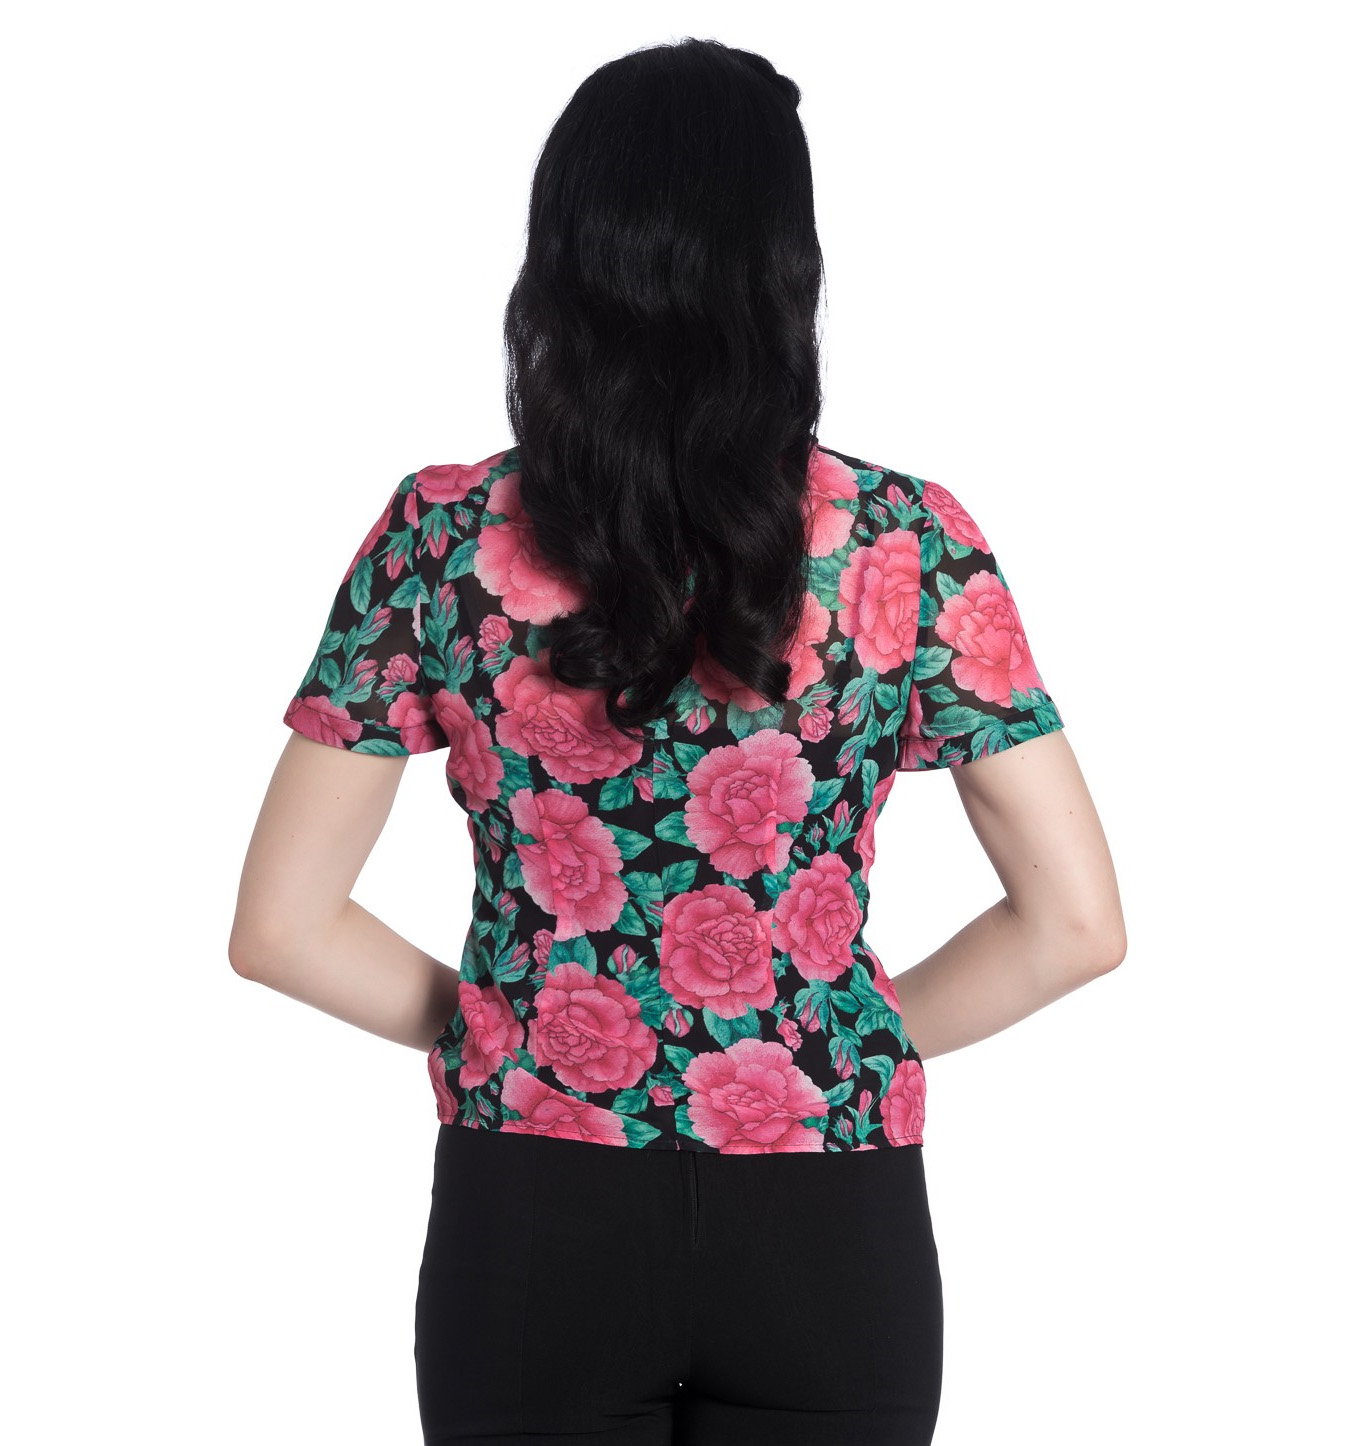 Hell-Bunny-Shirt-Top-Flowers-Roses-EDEN-ROSE-Black-Pink-Blouse-All-Sizes thumbnail 21